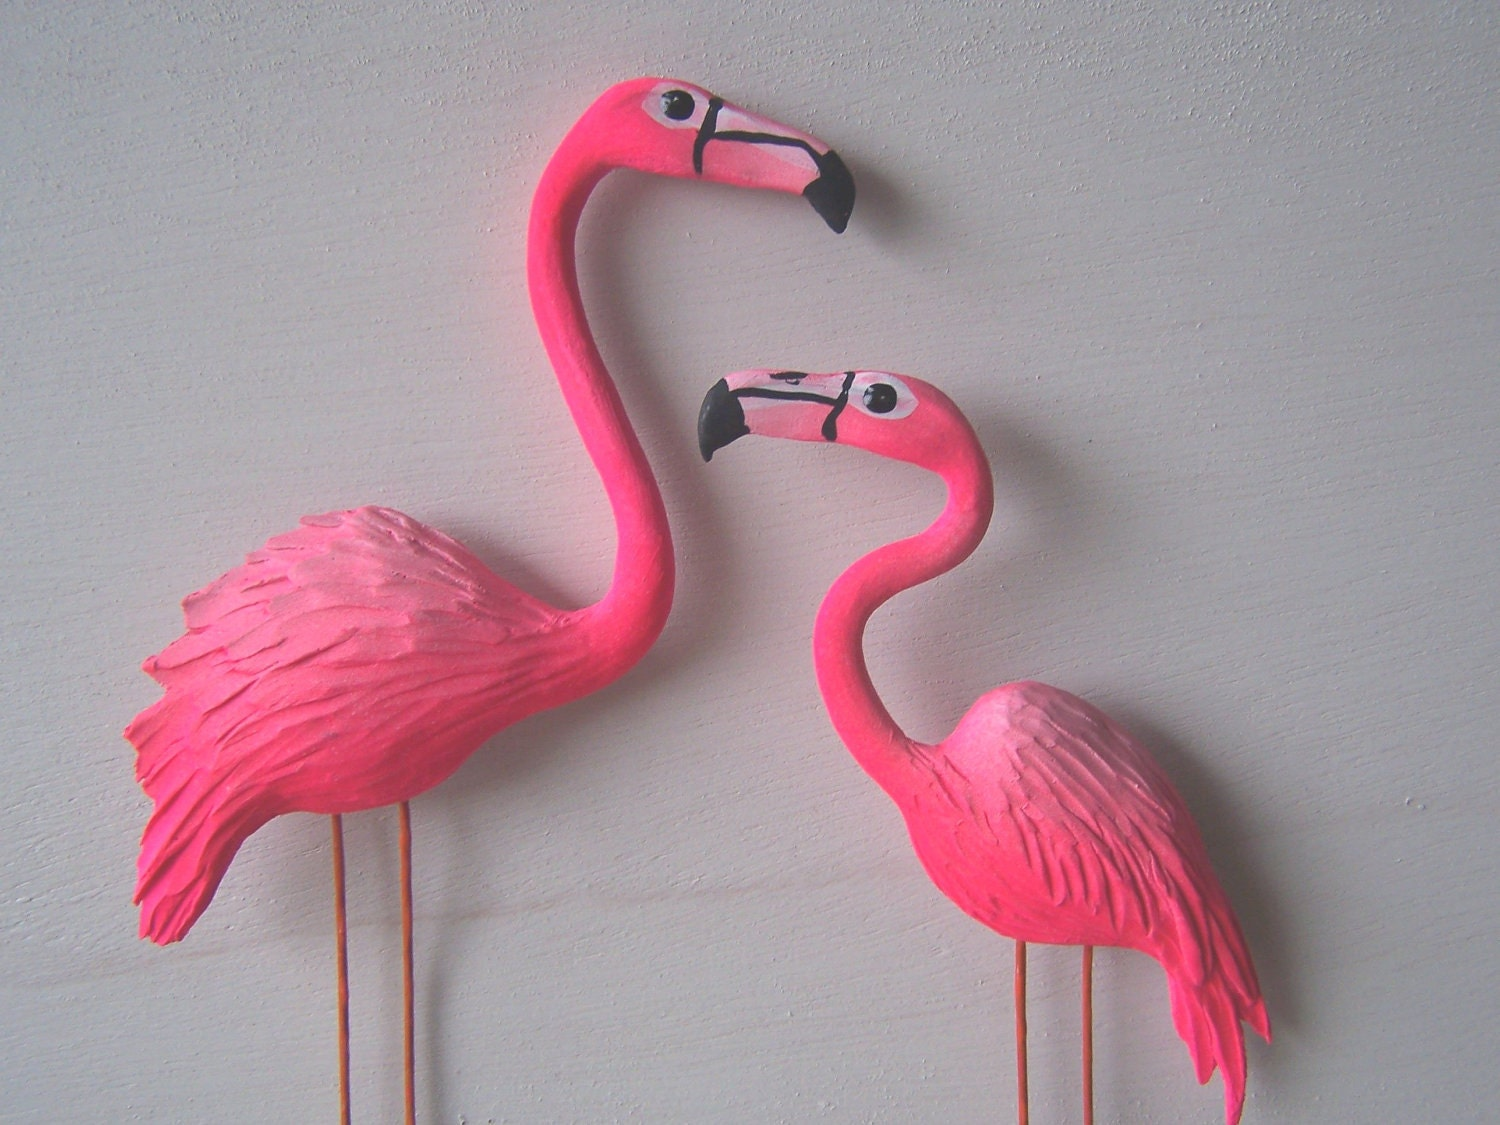 Pink flamingo art sculpture wall decor by artistjp on etsy for Pink wall art